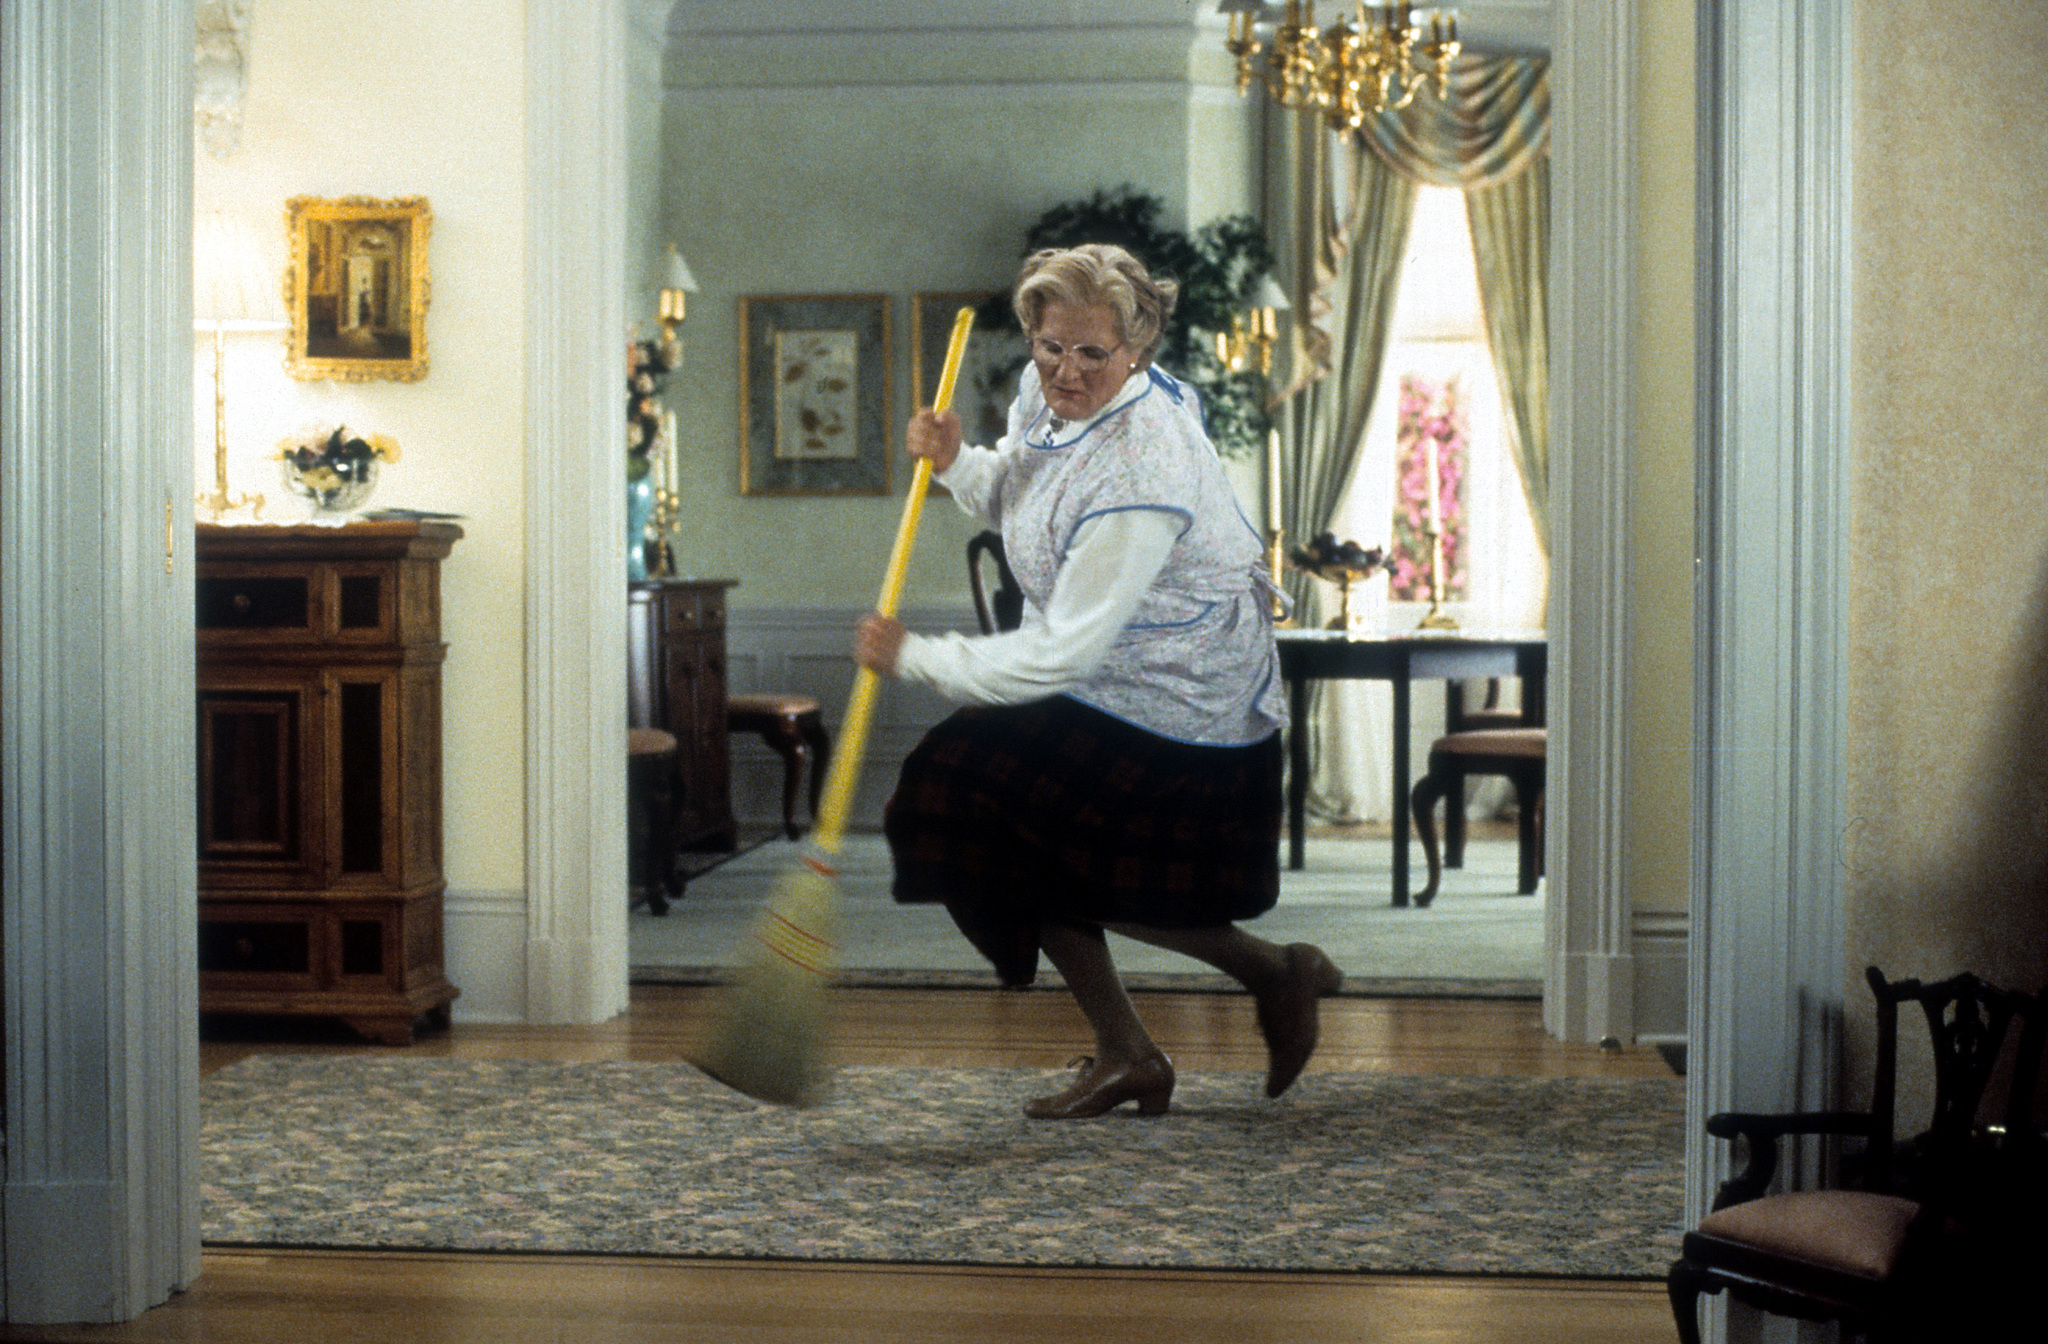 Robin Williams in Mrs. Doubtfire (1993)